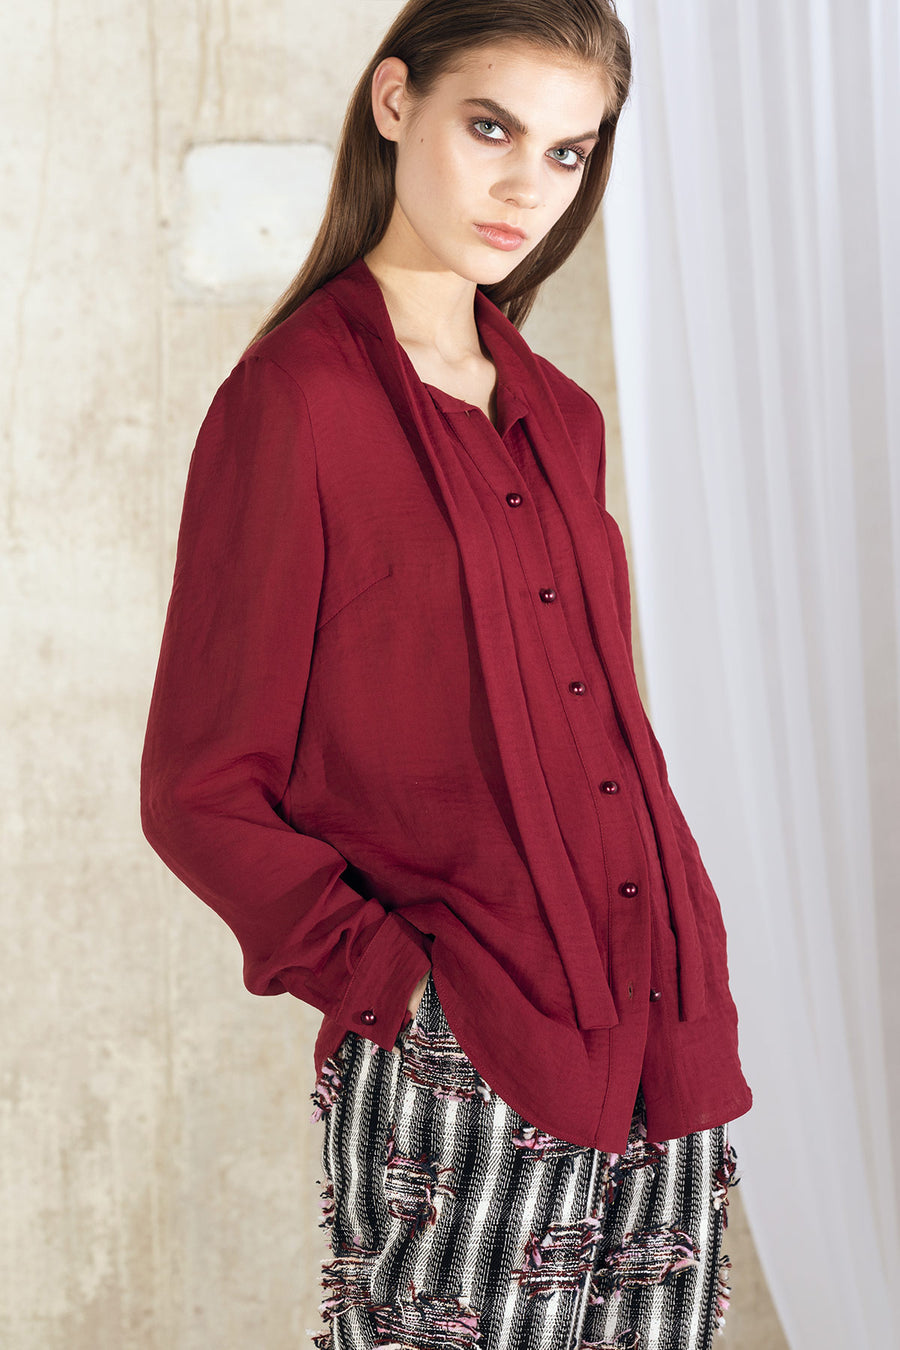 LOVA Viscose Cut Out Blouse - Burgundy